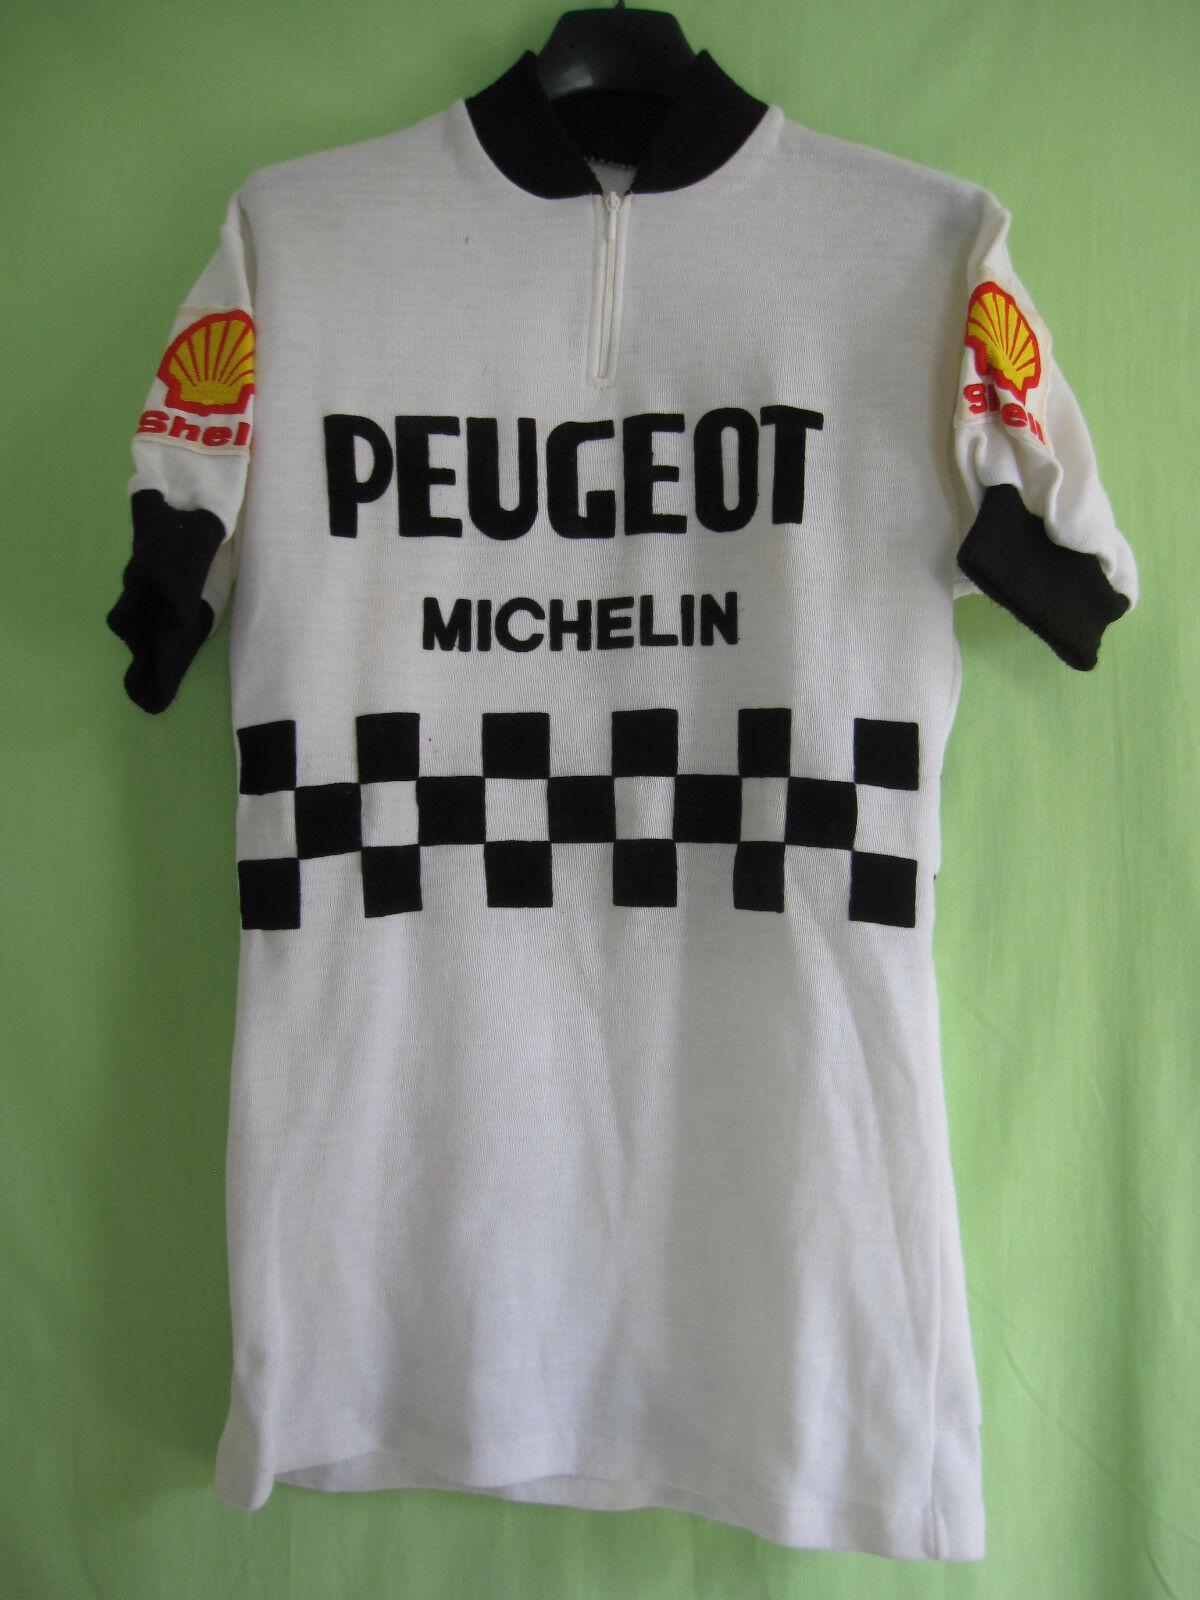 Cycling jersey peugeot cycles shell  acrylic vintage michelin jersey-m  factory outlet